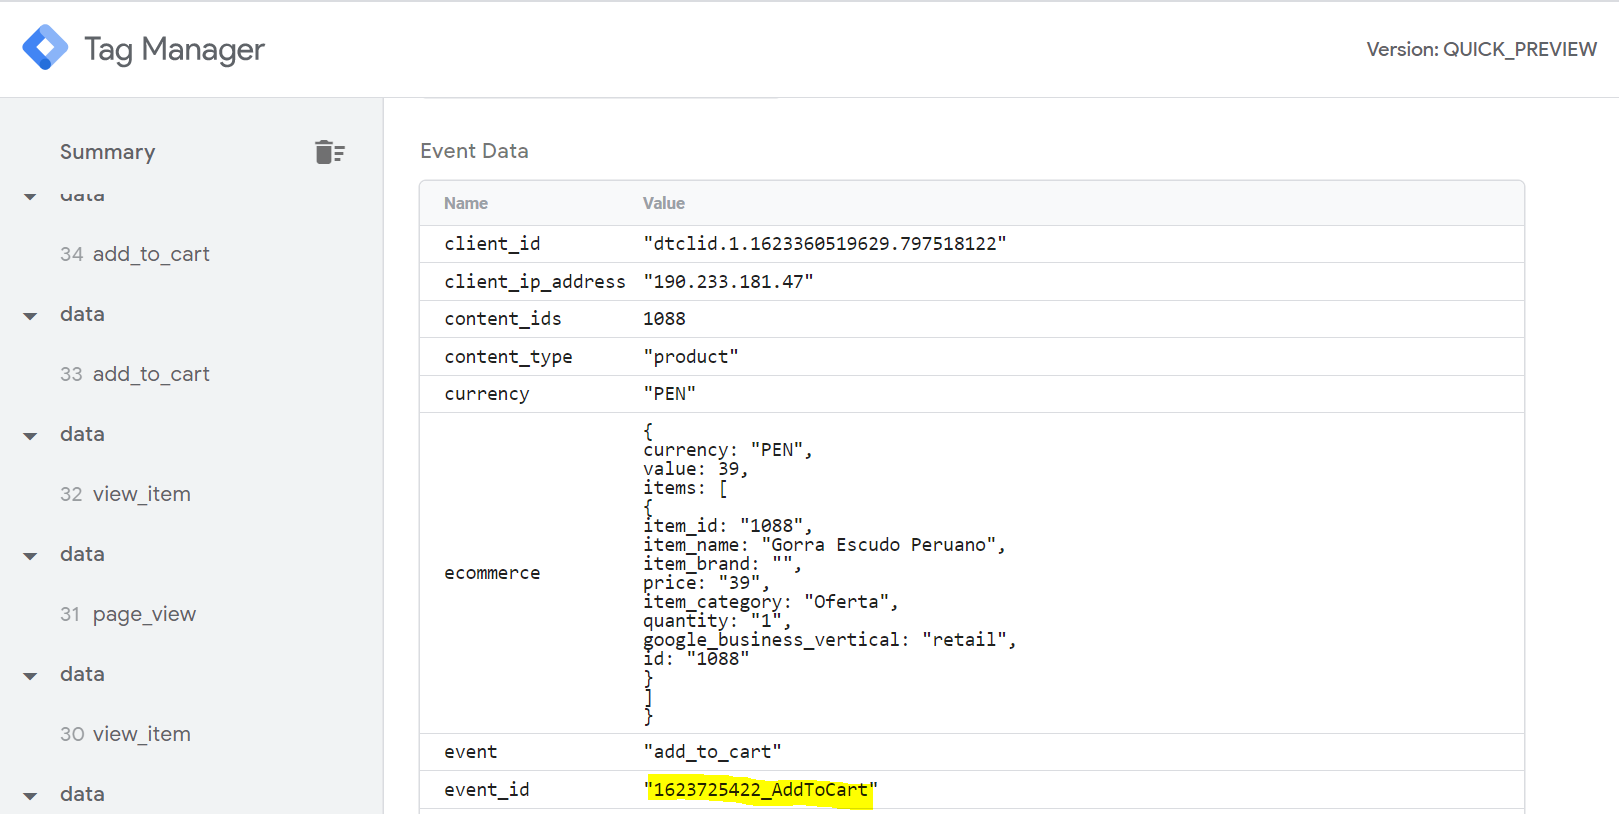 event_id-event data